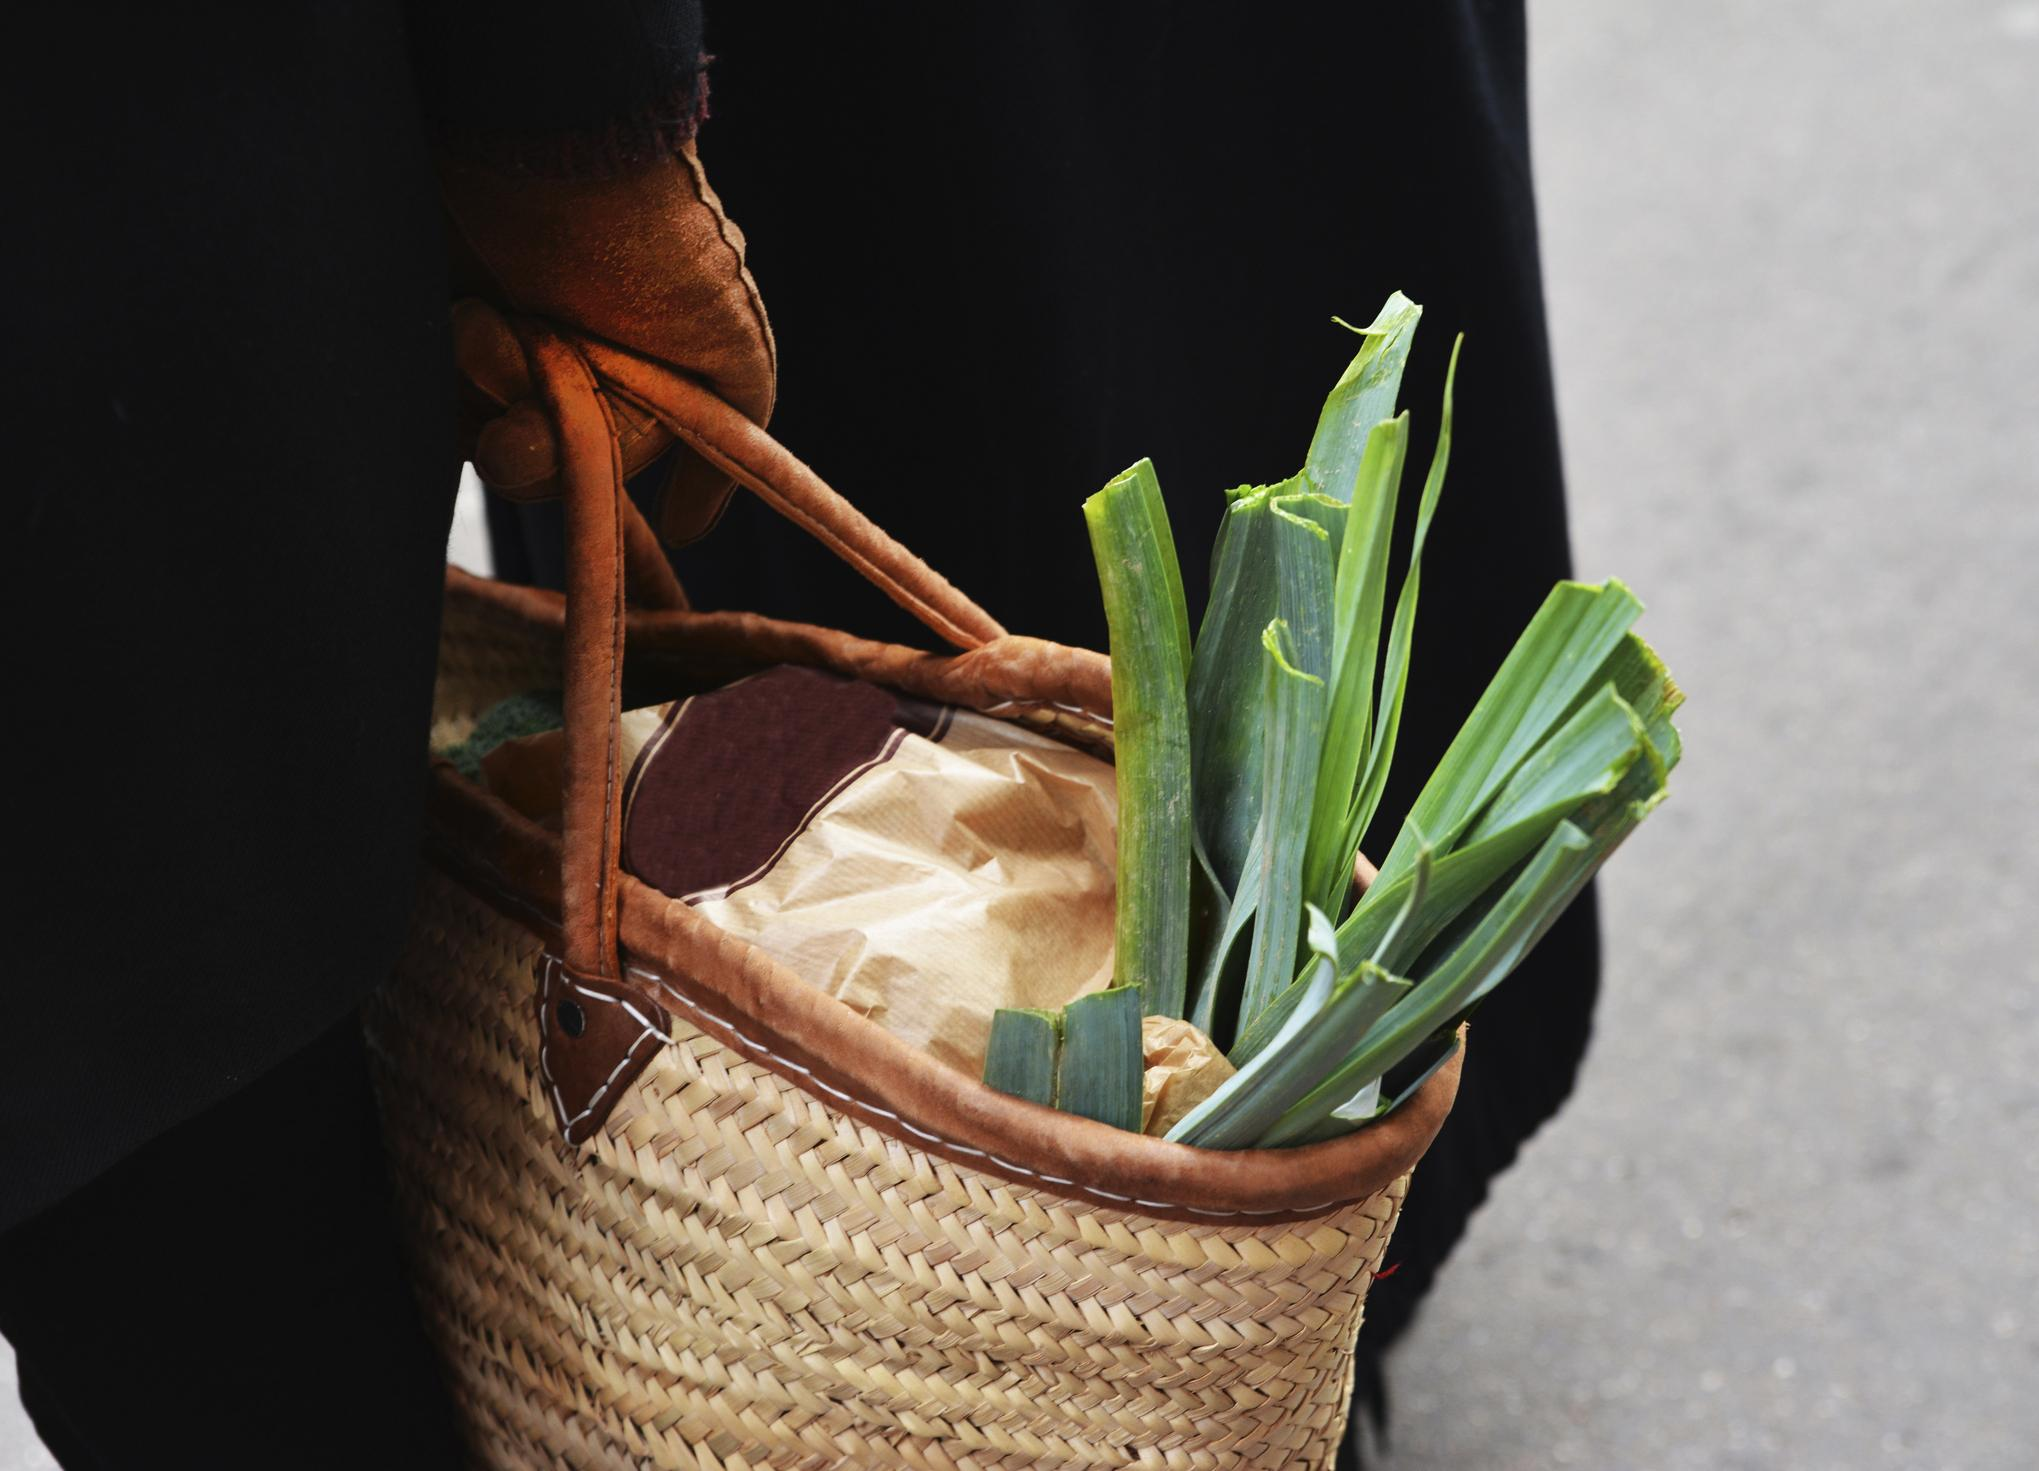 leek in a straw reusable grocery bag farmers market